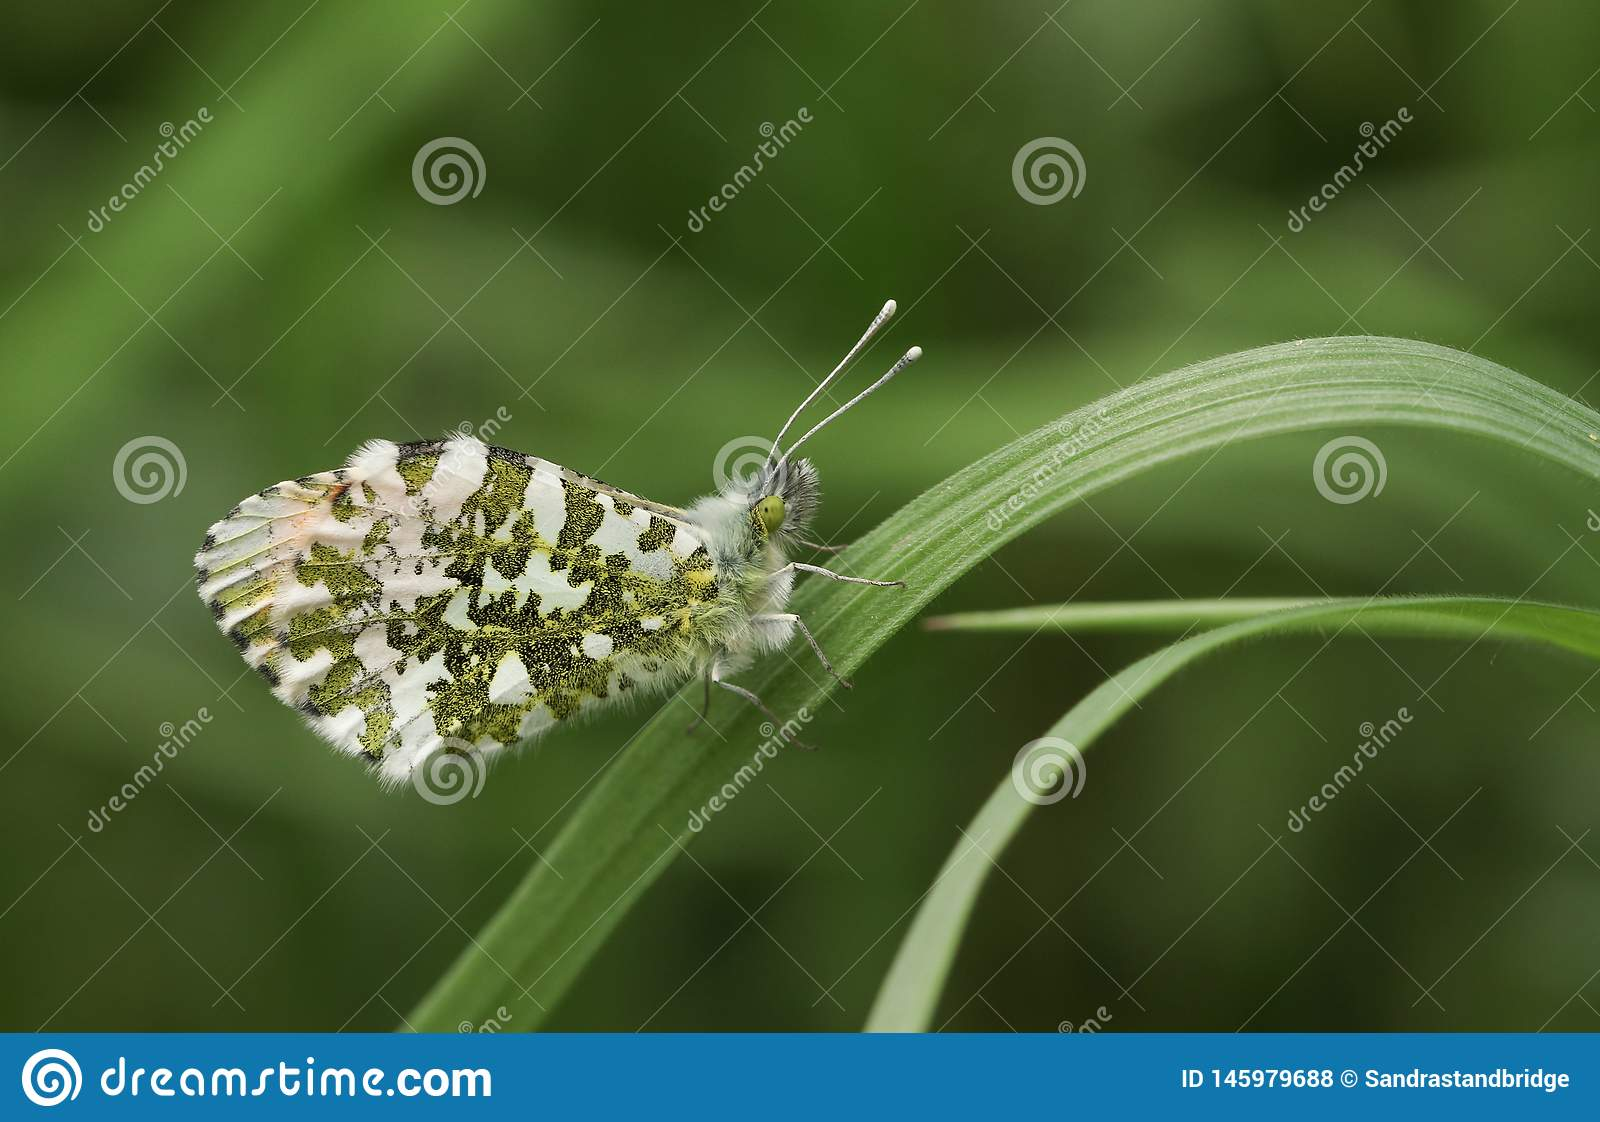 A newly emerged male Orange-tip Butterfly Anthocharis cardamines perched on a blade of grass.